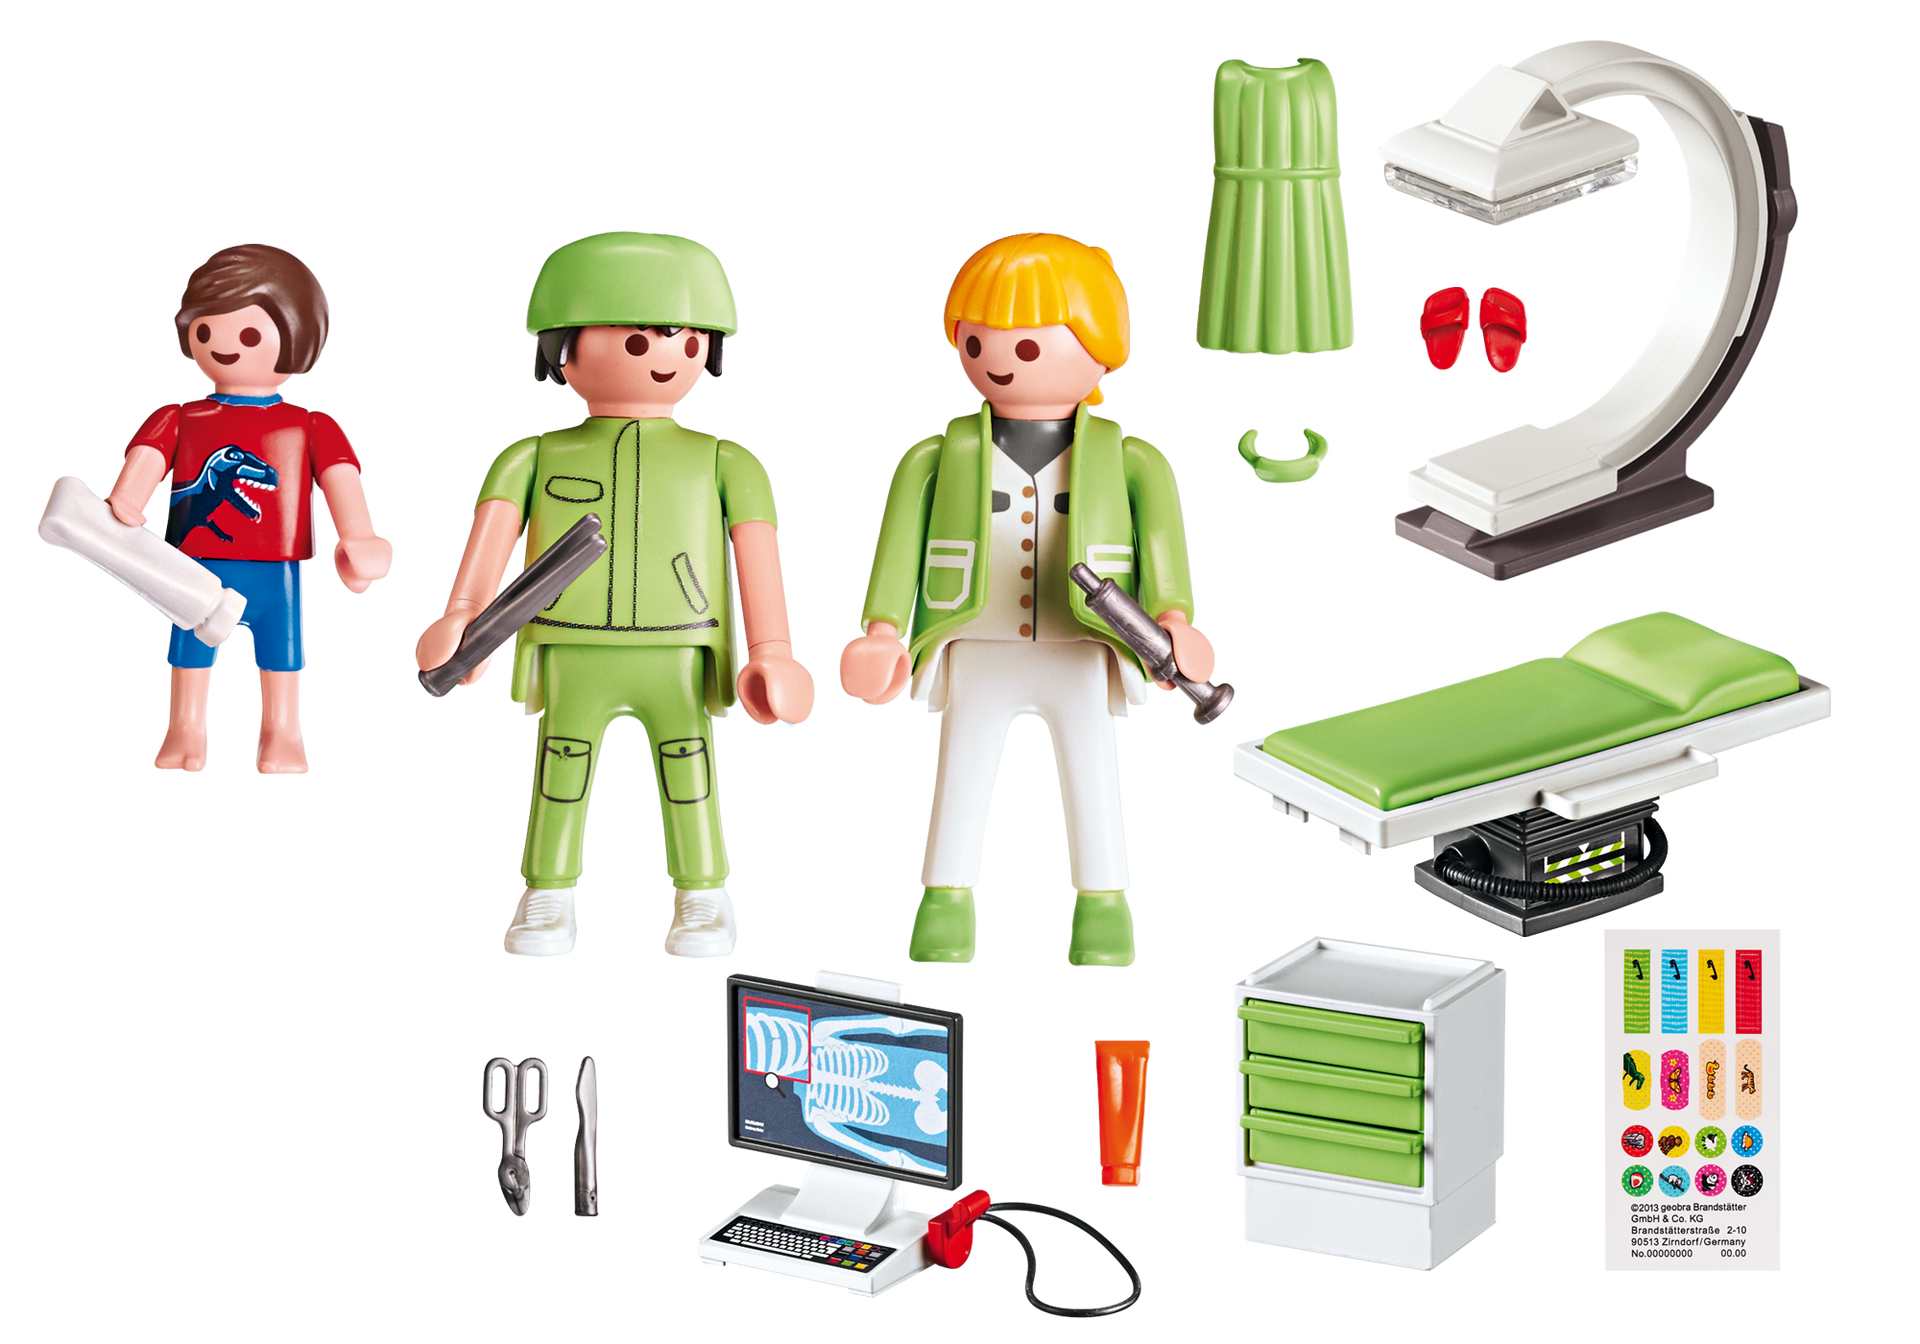 vector download Room playmobil usa httpmediaplaymobilcomiplaymobilproductboxback. X ray machine clipart